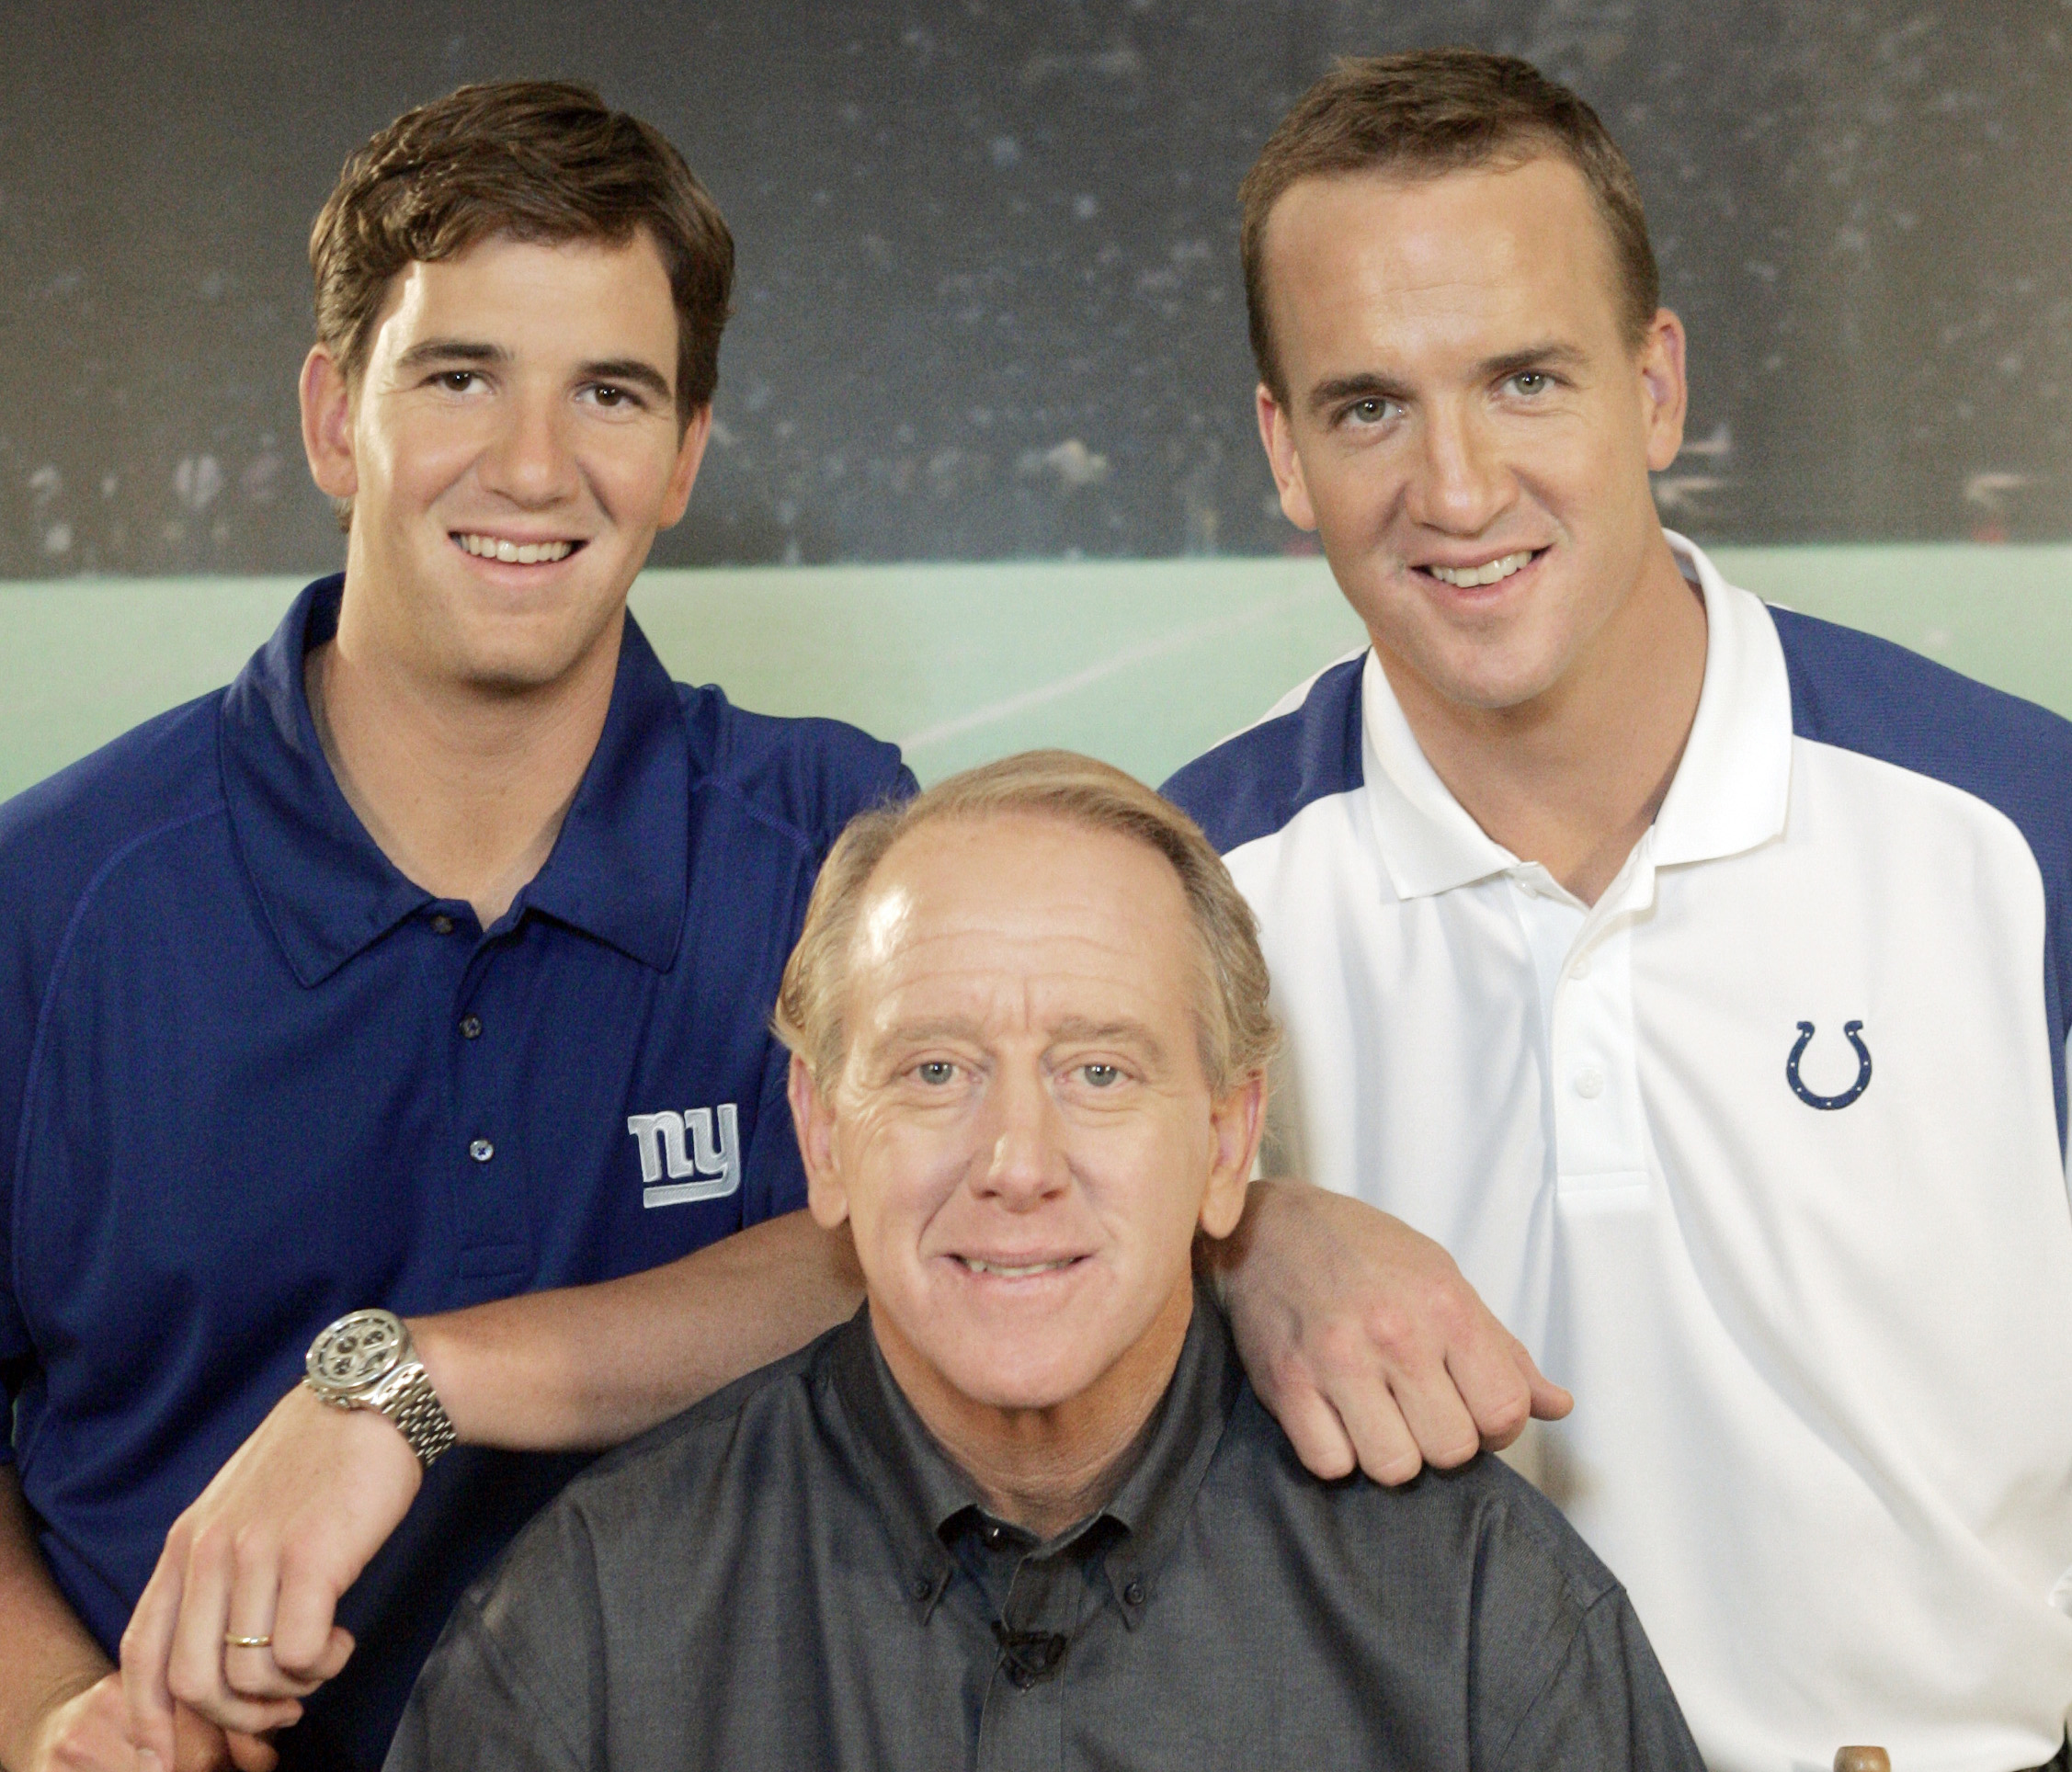 FILE - In this May 8, 2008, file photo, Archie Manning, center, is joined by his sons Eli Manning, left, and Peyton Manning, in Beverly Hills, Calif. A person with knowledge of the decision tells The Associated Press on Monday, March 6, 2016, that Peyton